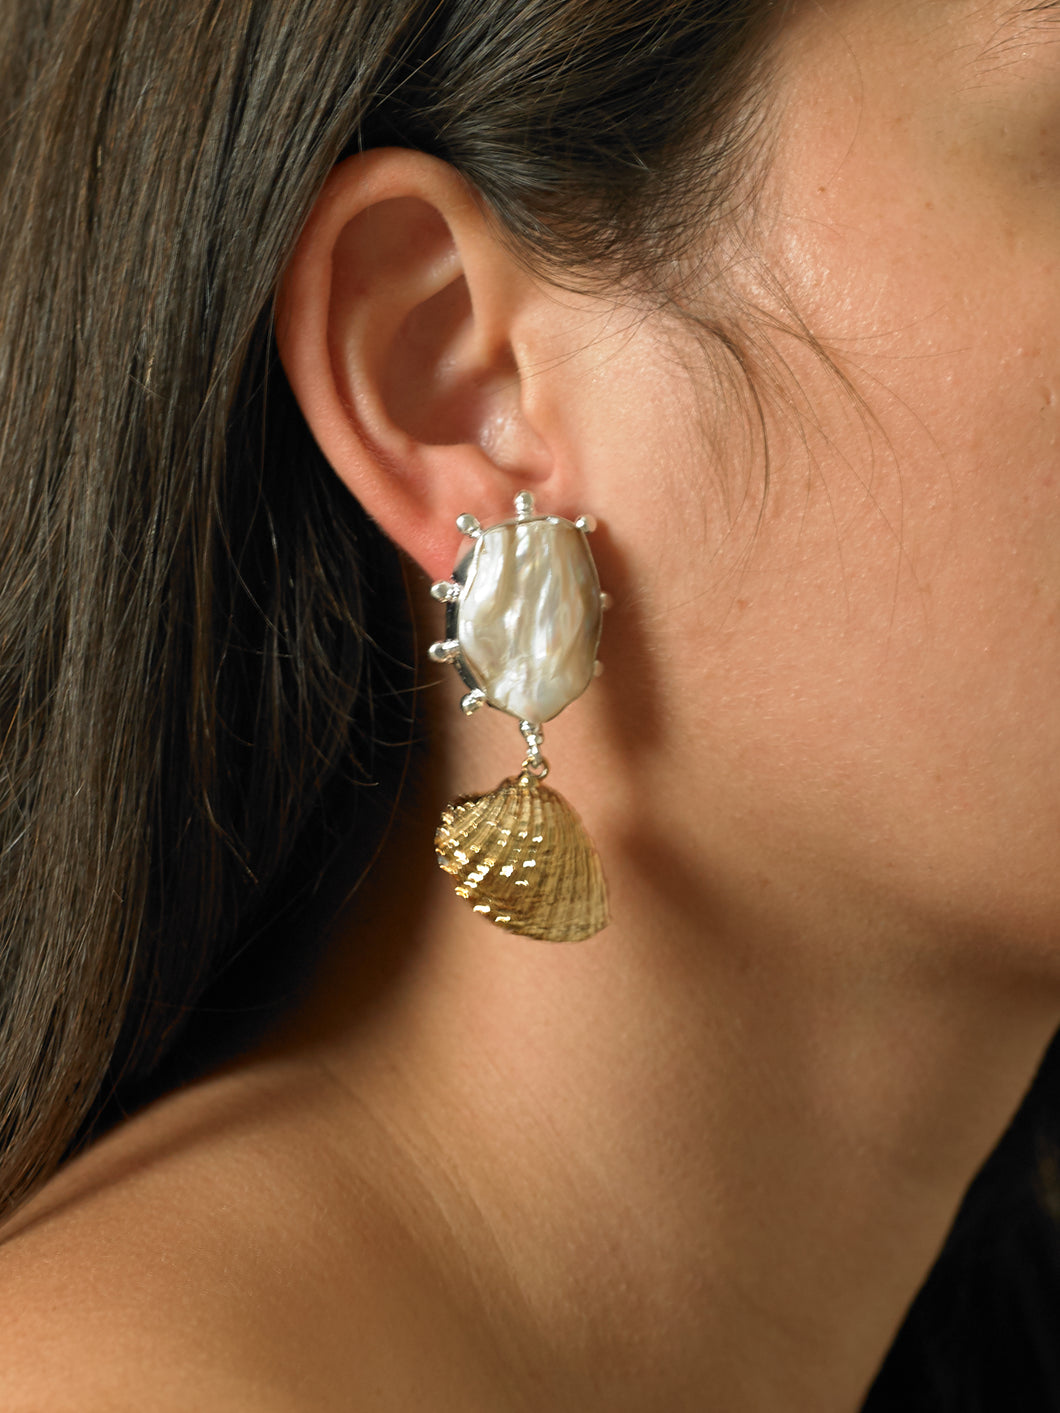 Ikata Earrings - White Gold/White